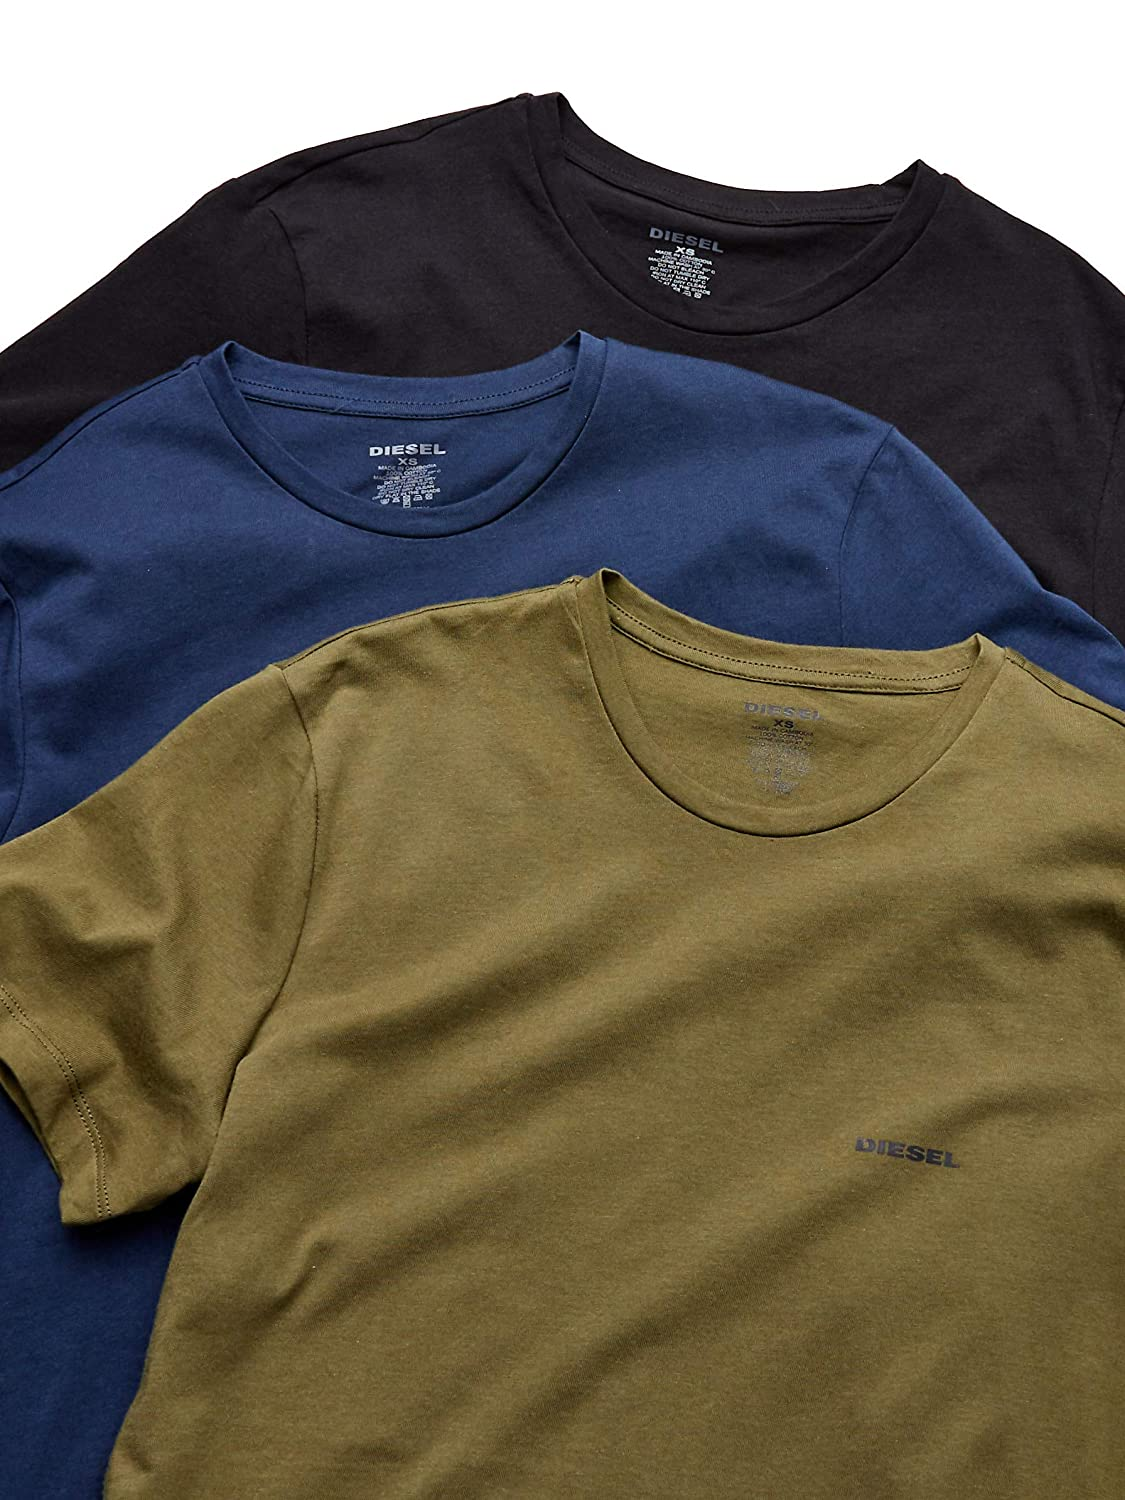 ce74a1f1770e8 Diesel Men s Umtee-jakethreepack T-Shirt Pack of 3  Amazon.co.uk  Clothing